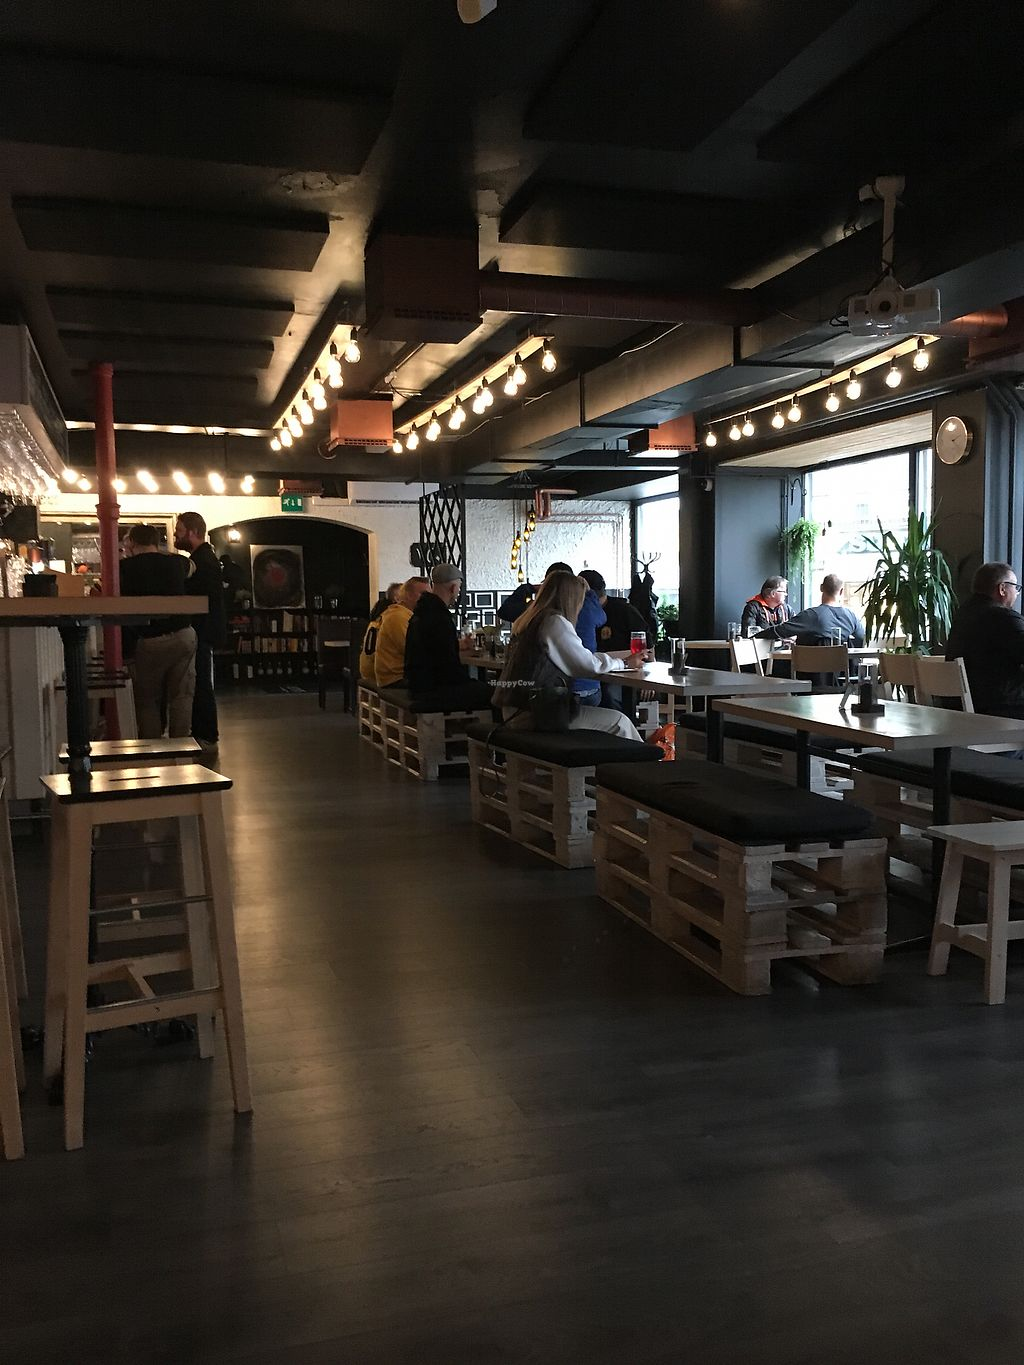 """Photo of Gastropub Betony  by <a href=""""/members/profile/dicesskull"""">dicesskull</a> <br/>Bar and seating area <br/> September 9, 2017  - <a href='/contact/abuse/image/94331/302426'>Report</a>"""